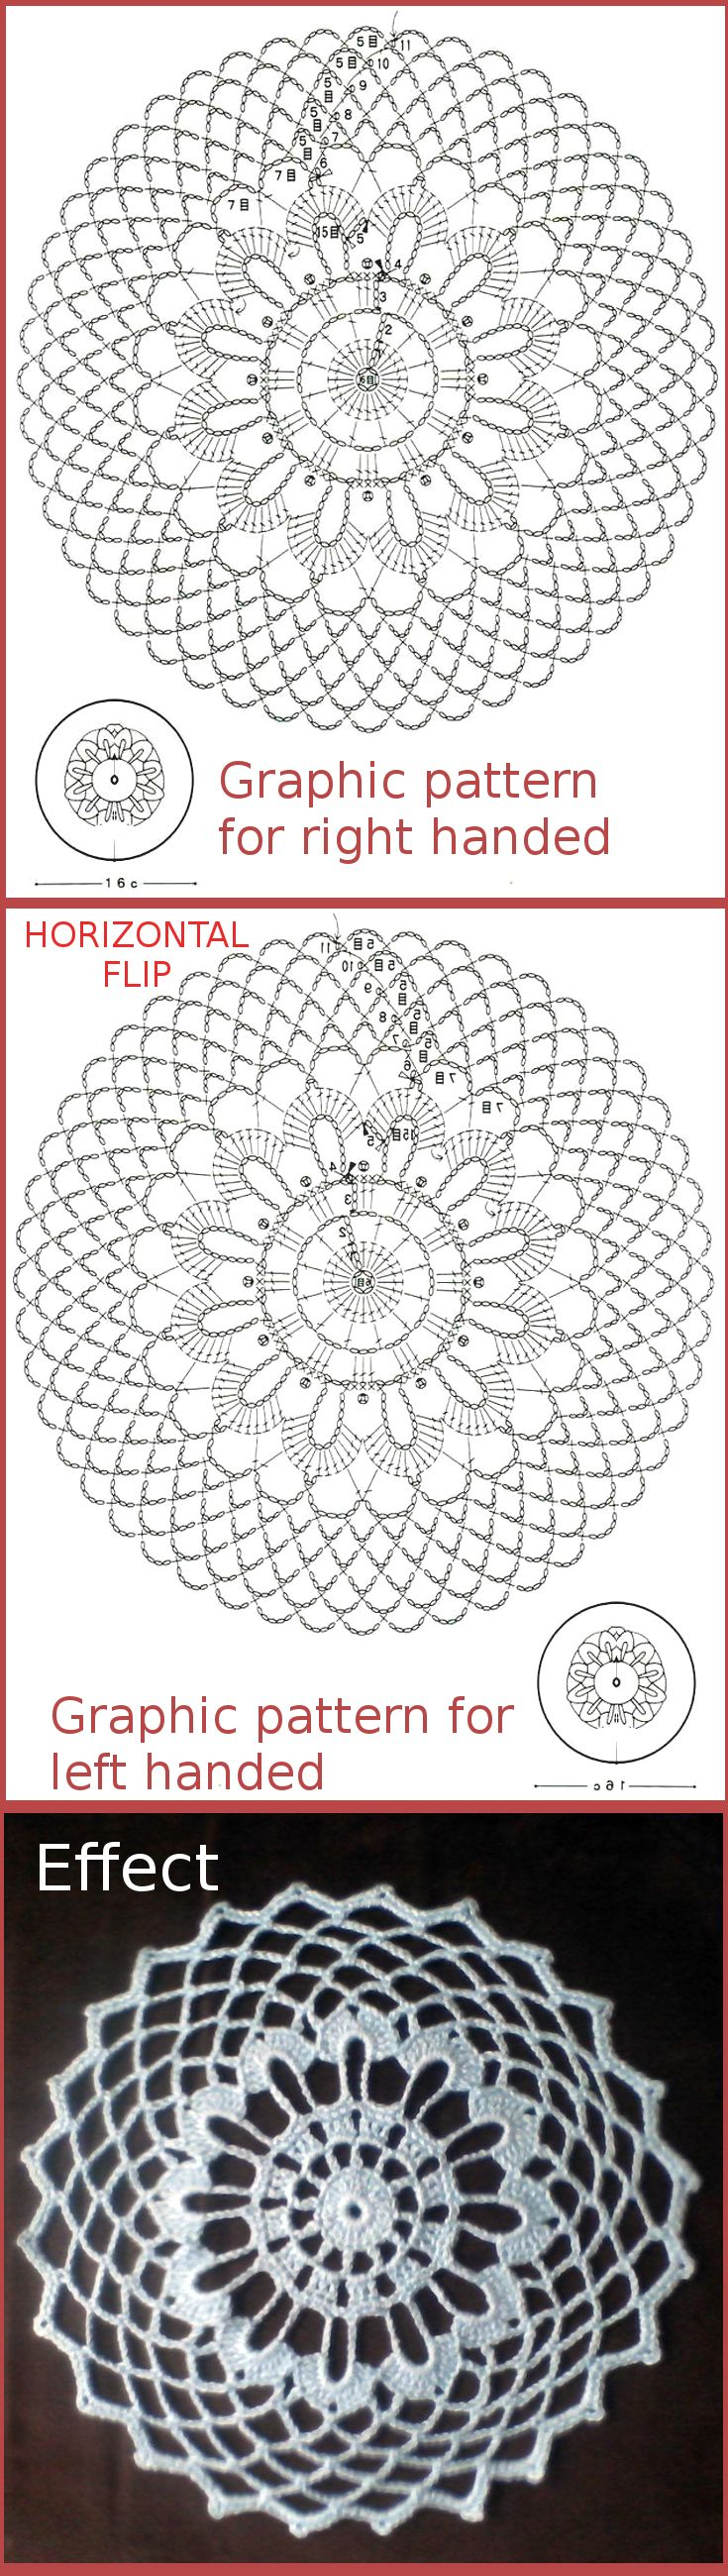 Crochet patterns for left hended! One simple trick! Just make FLIP HORIZONTAL in any graphic program (XnView, GIMP...) and you have pattern for you.